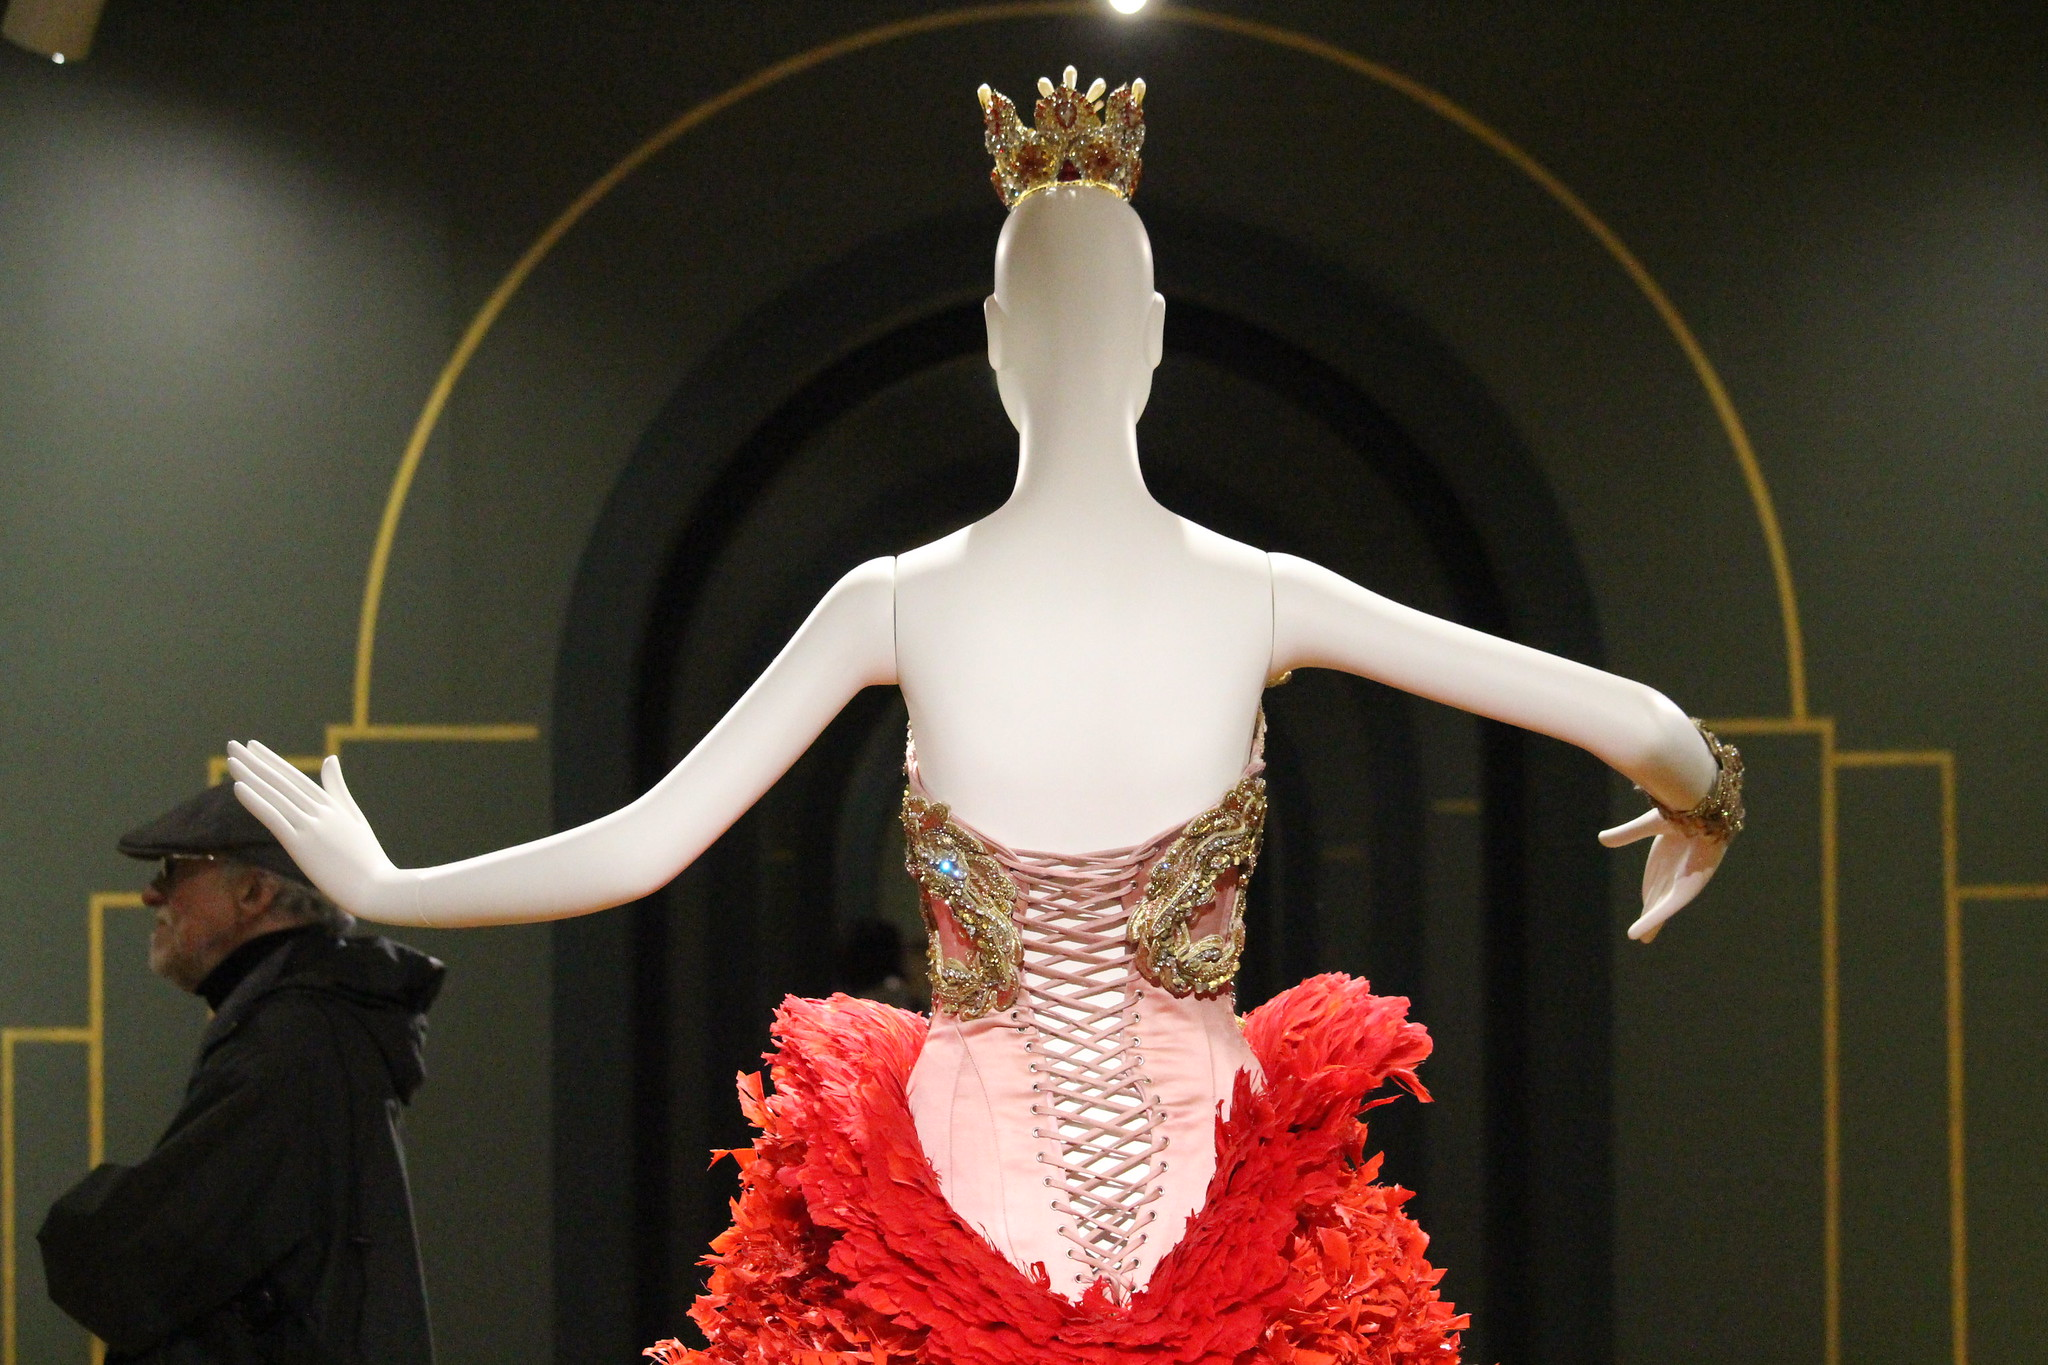 A dress by designer Guo Pei on view at the Vancouver Art Gallery.  Photography by Flickr user  JMacPherson .